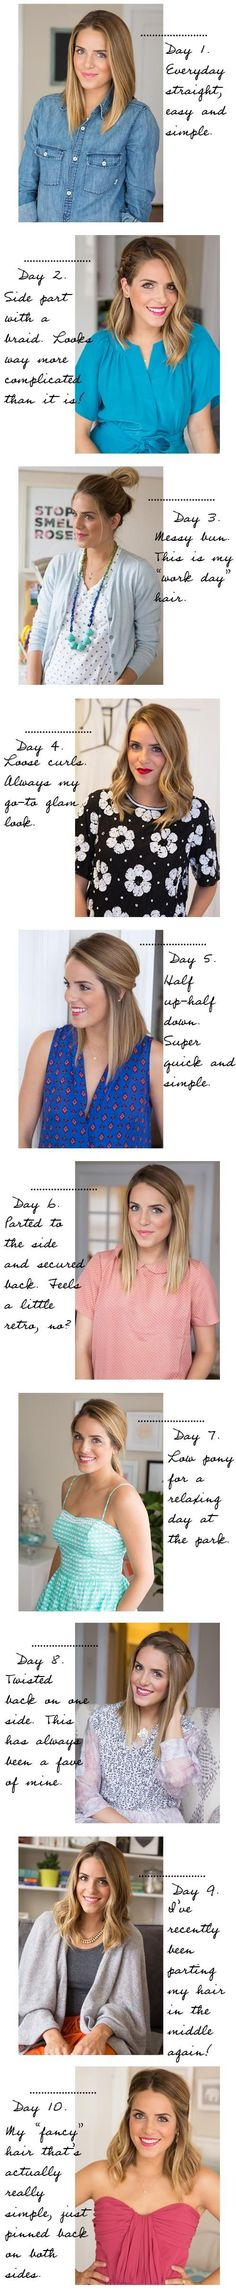 Shoulder Length Hair Styles (for my new do) Takes you to a different page...ut you can see it all on the pin image.